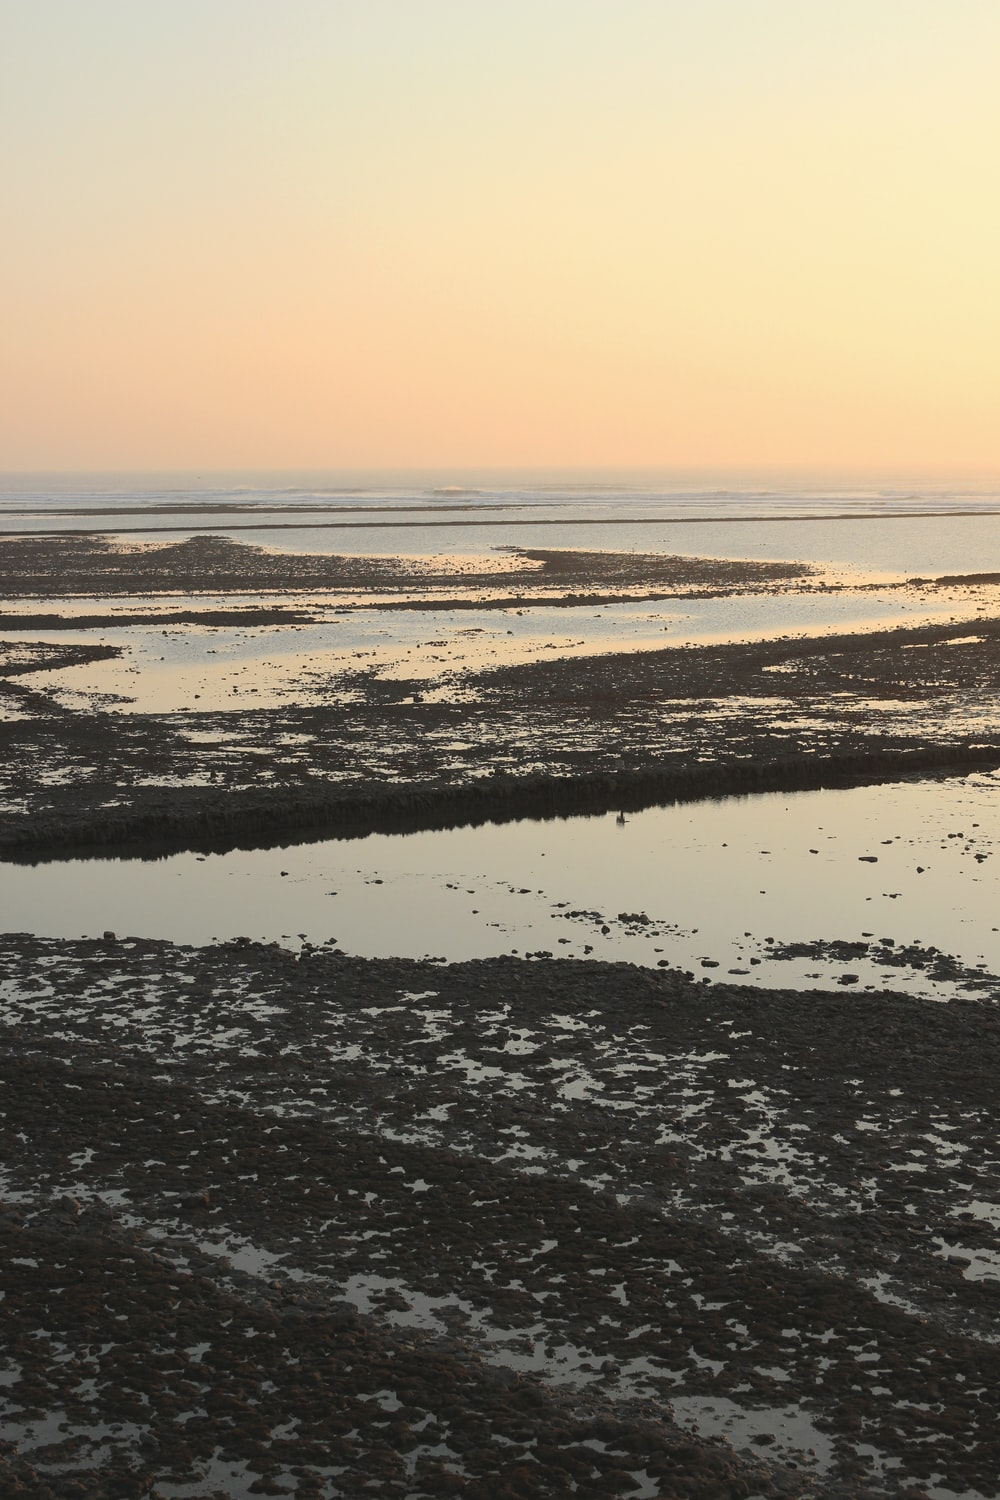 view of low tide body of water during golden hour